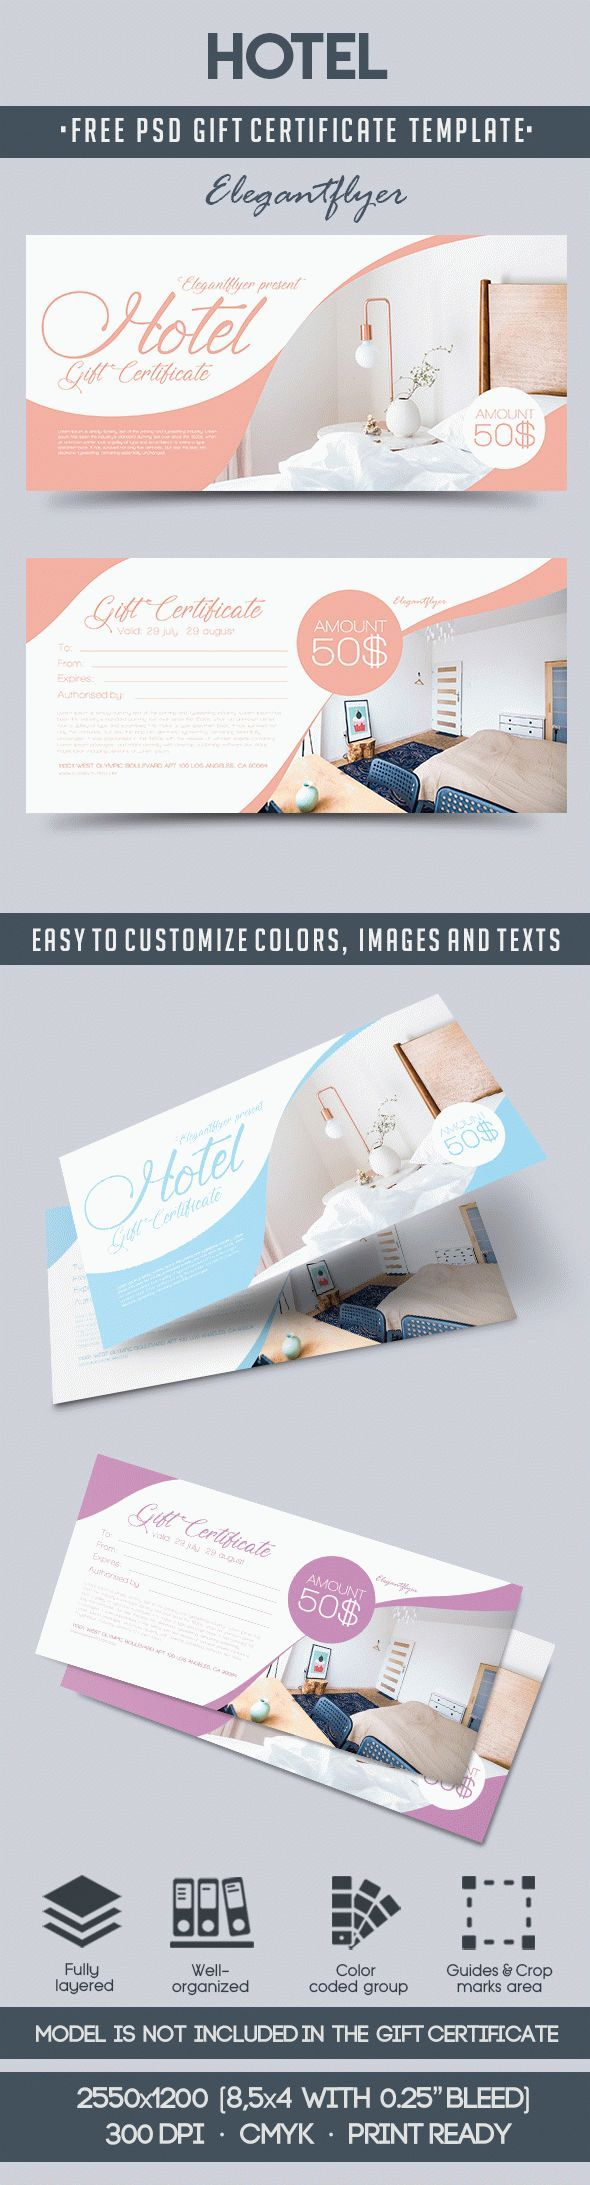 66 best Free Gift Certificate Templates images on Pinterest